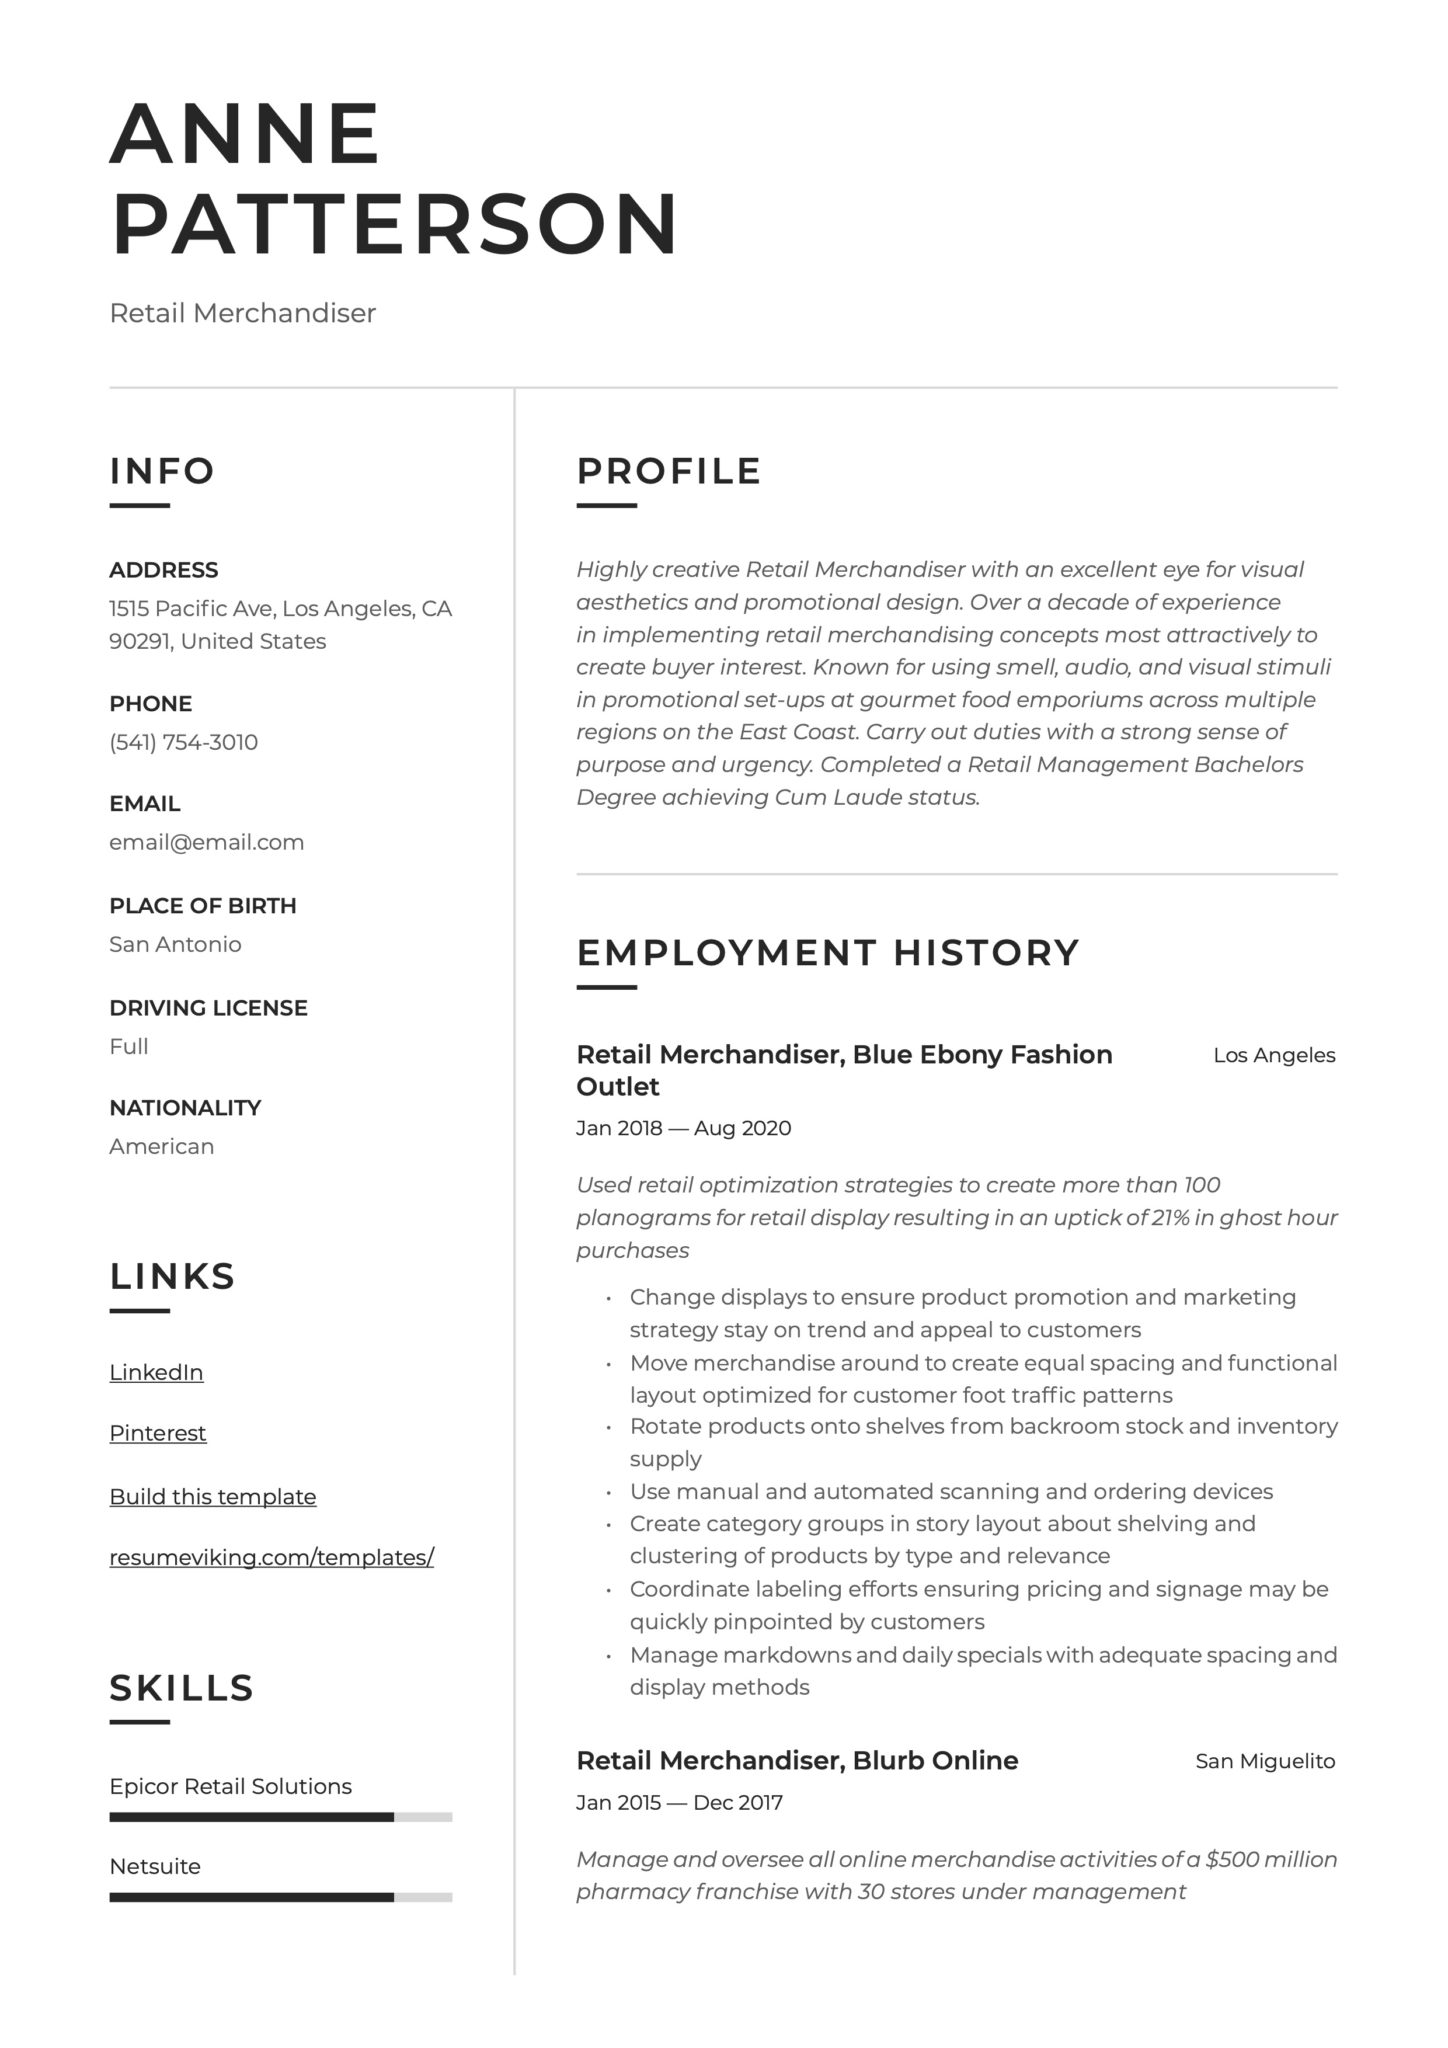 retail merchandiser resume writing guide templates logistics sample scaled science Resume Retail Logistics Resume Sample